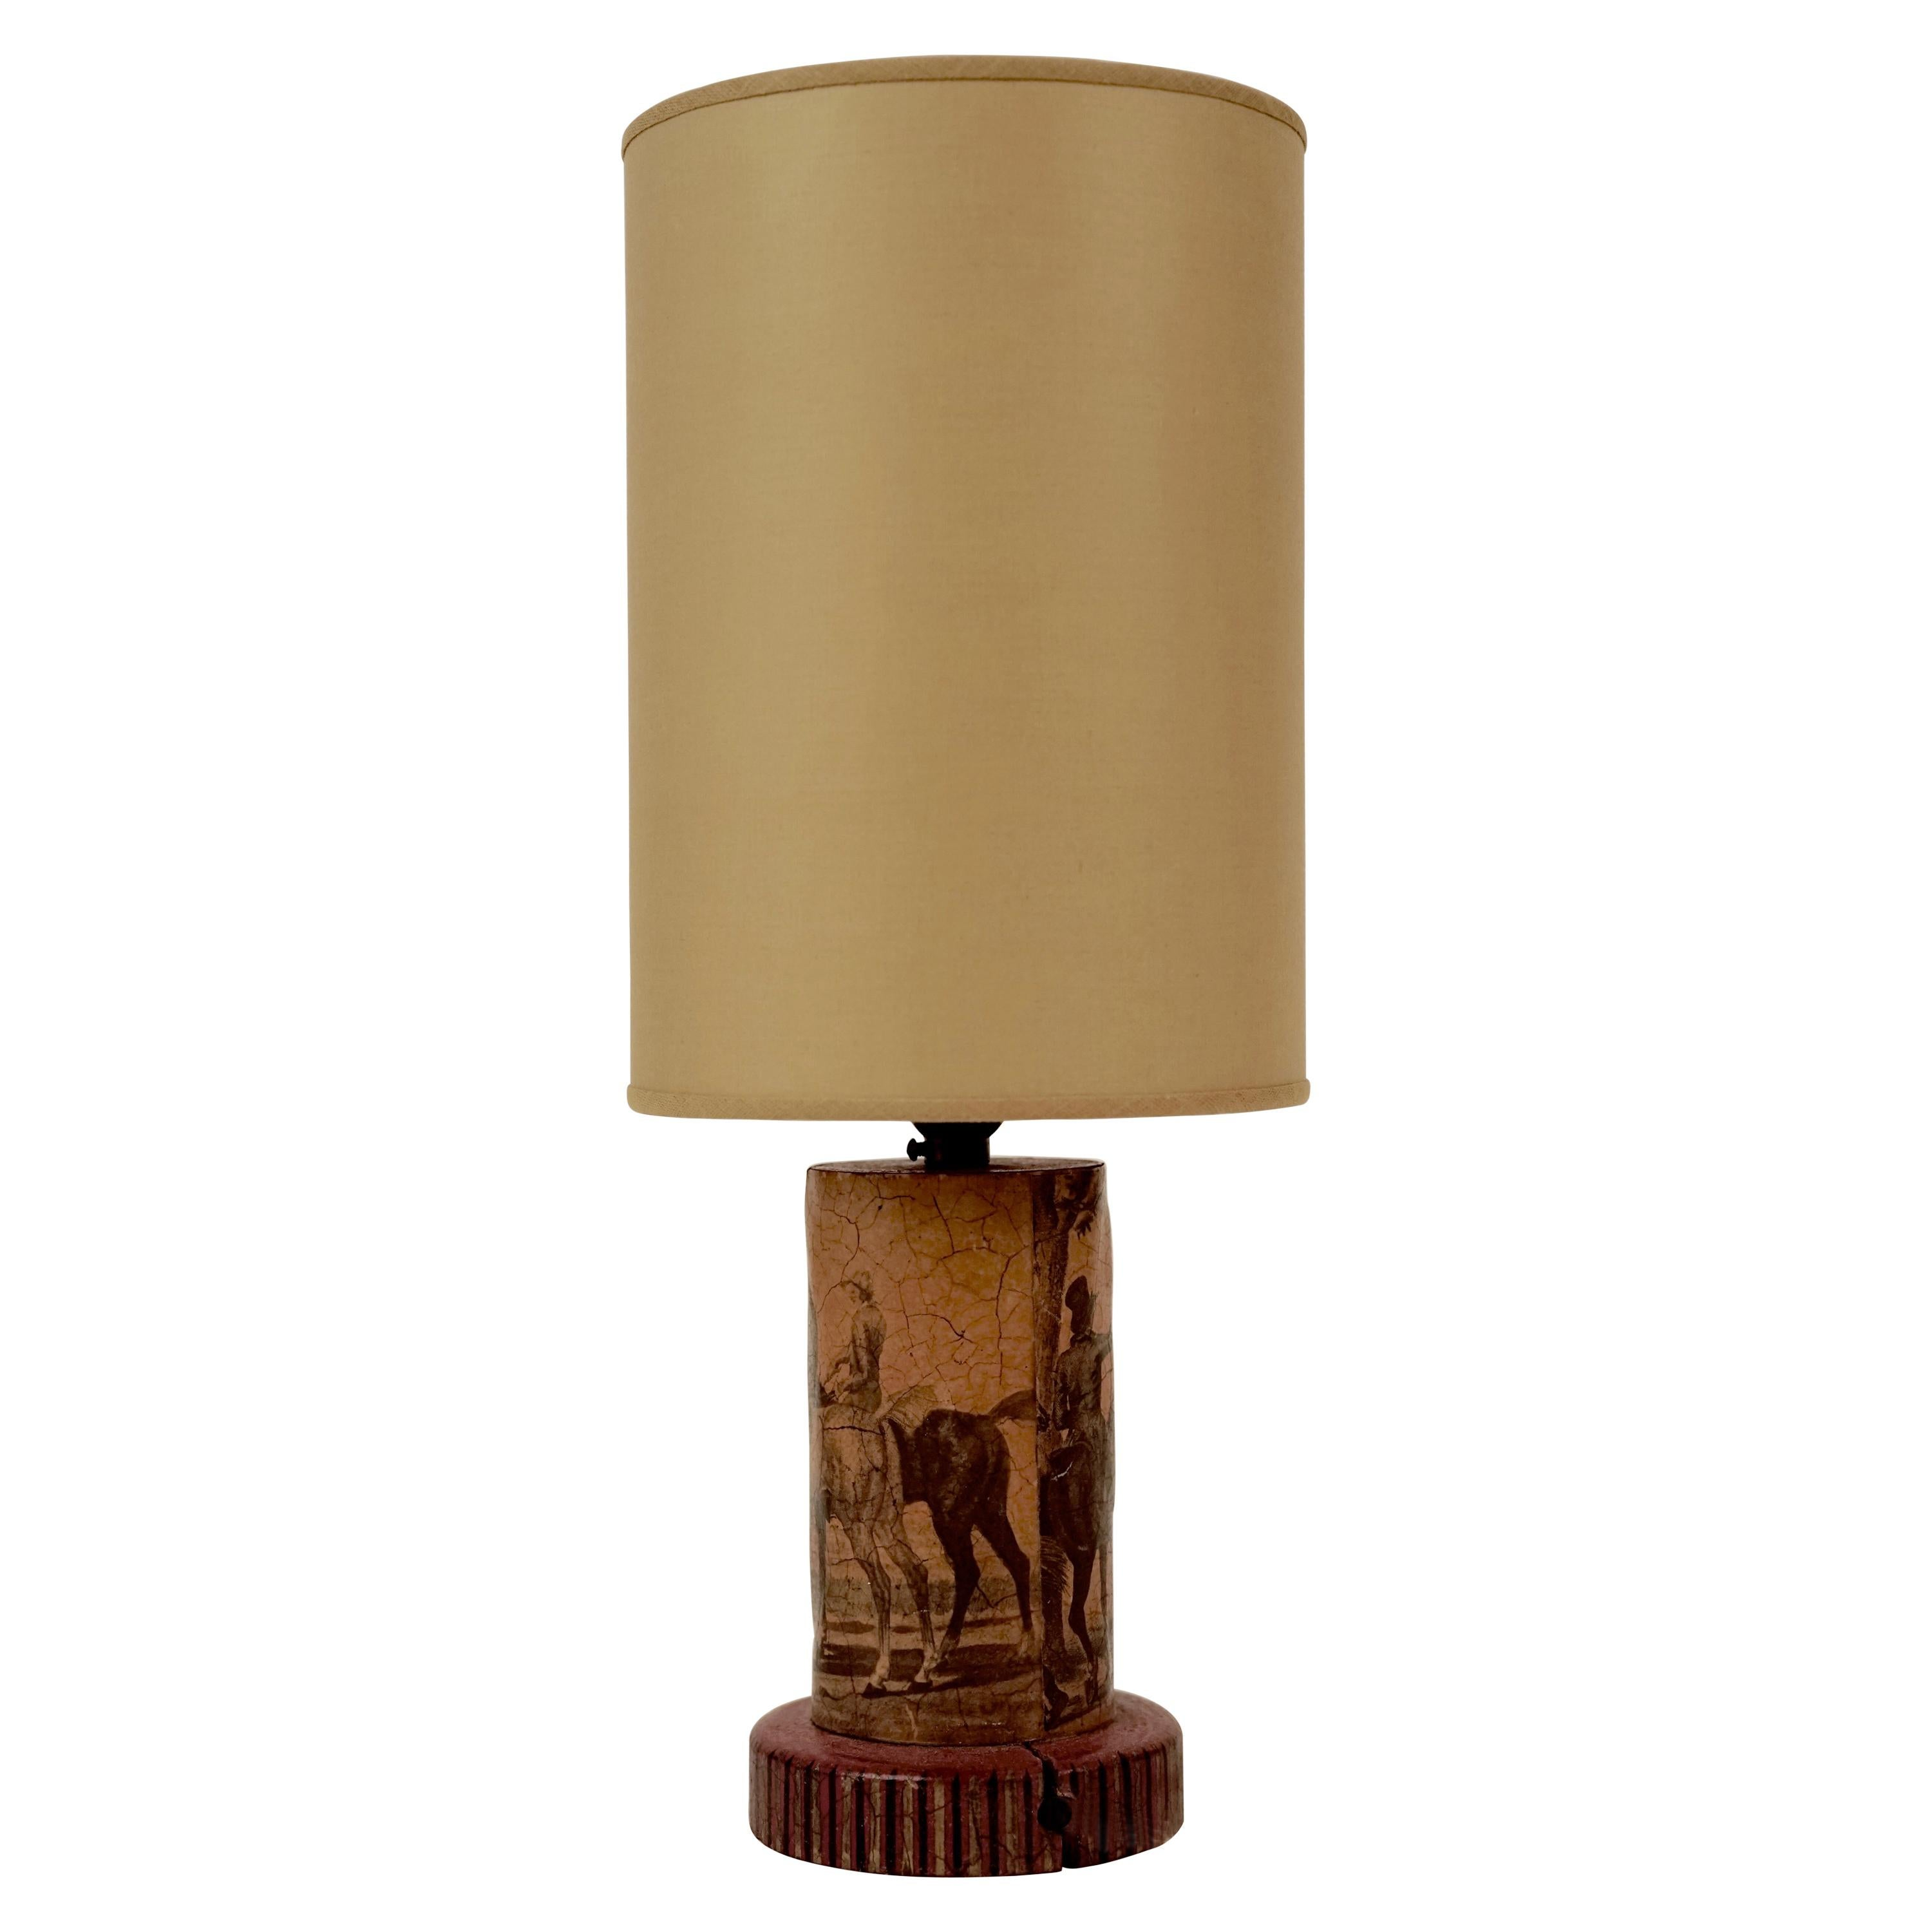 Small Découpage Table Lamp in Hollywood Regency Style